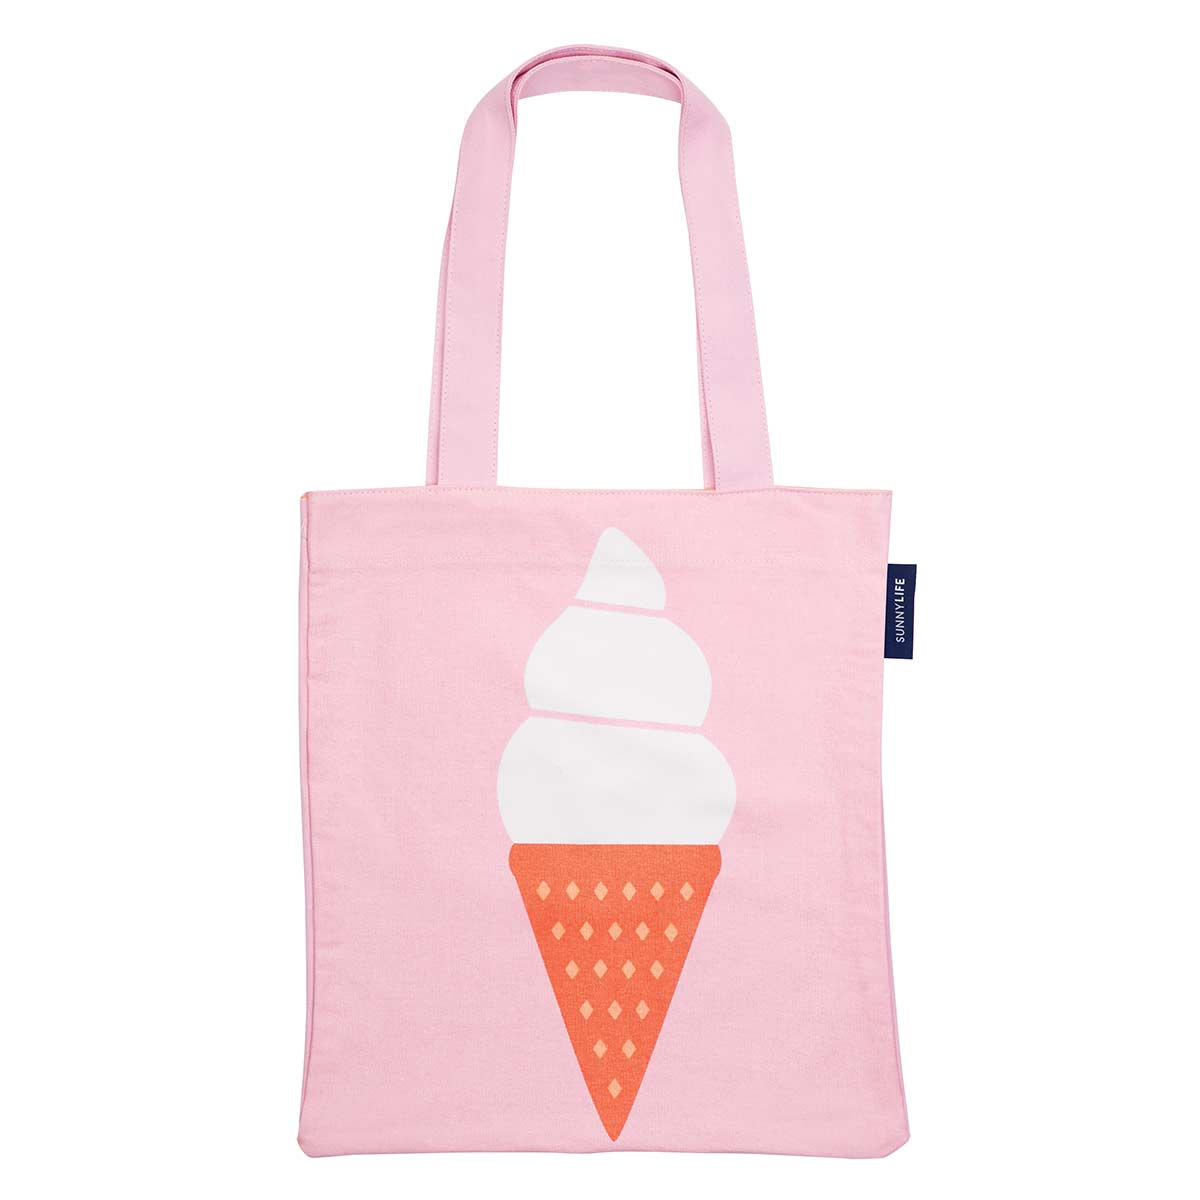 Tote bag de plage rose Glace